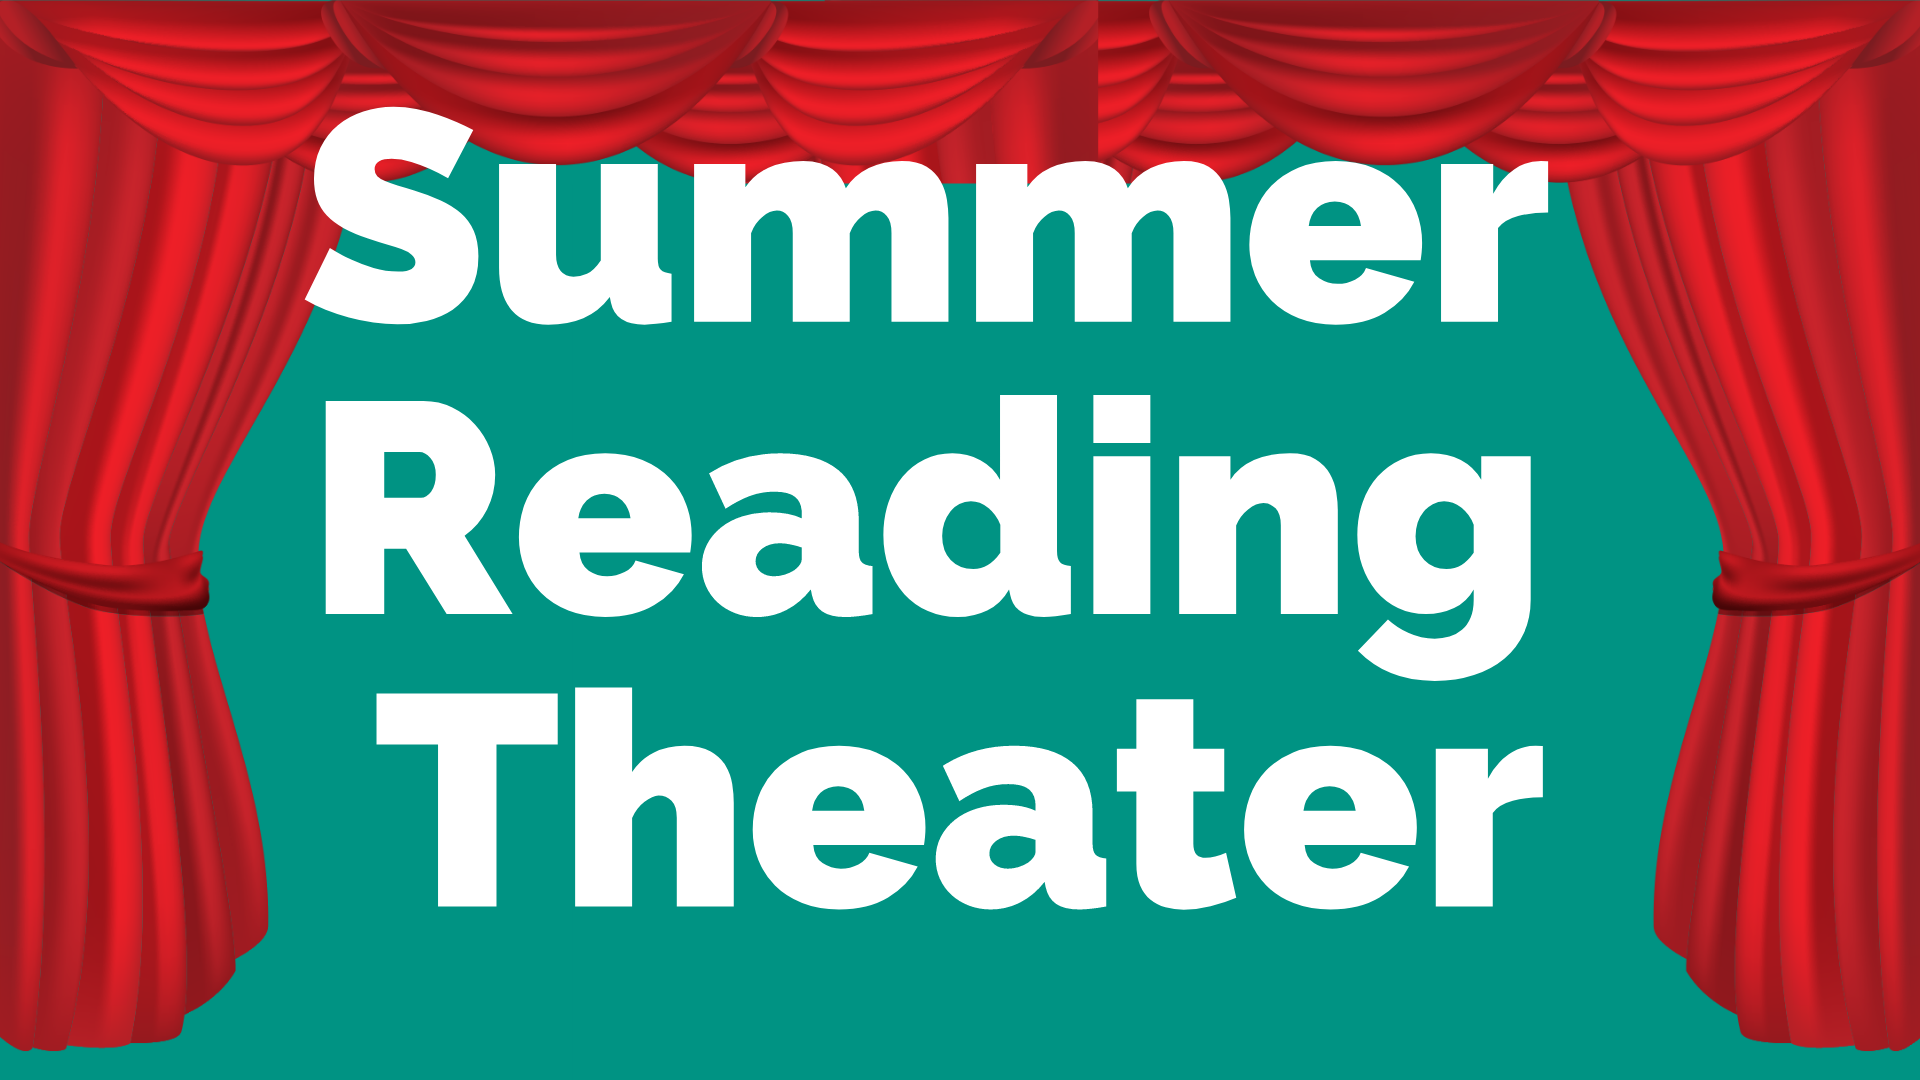 Summer Reading Theater